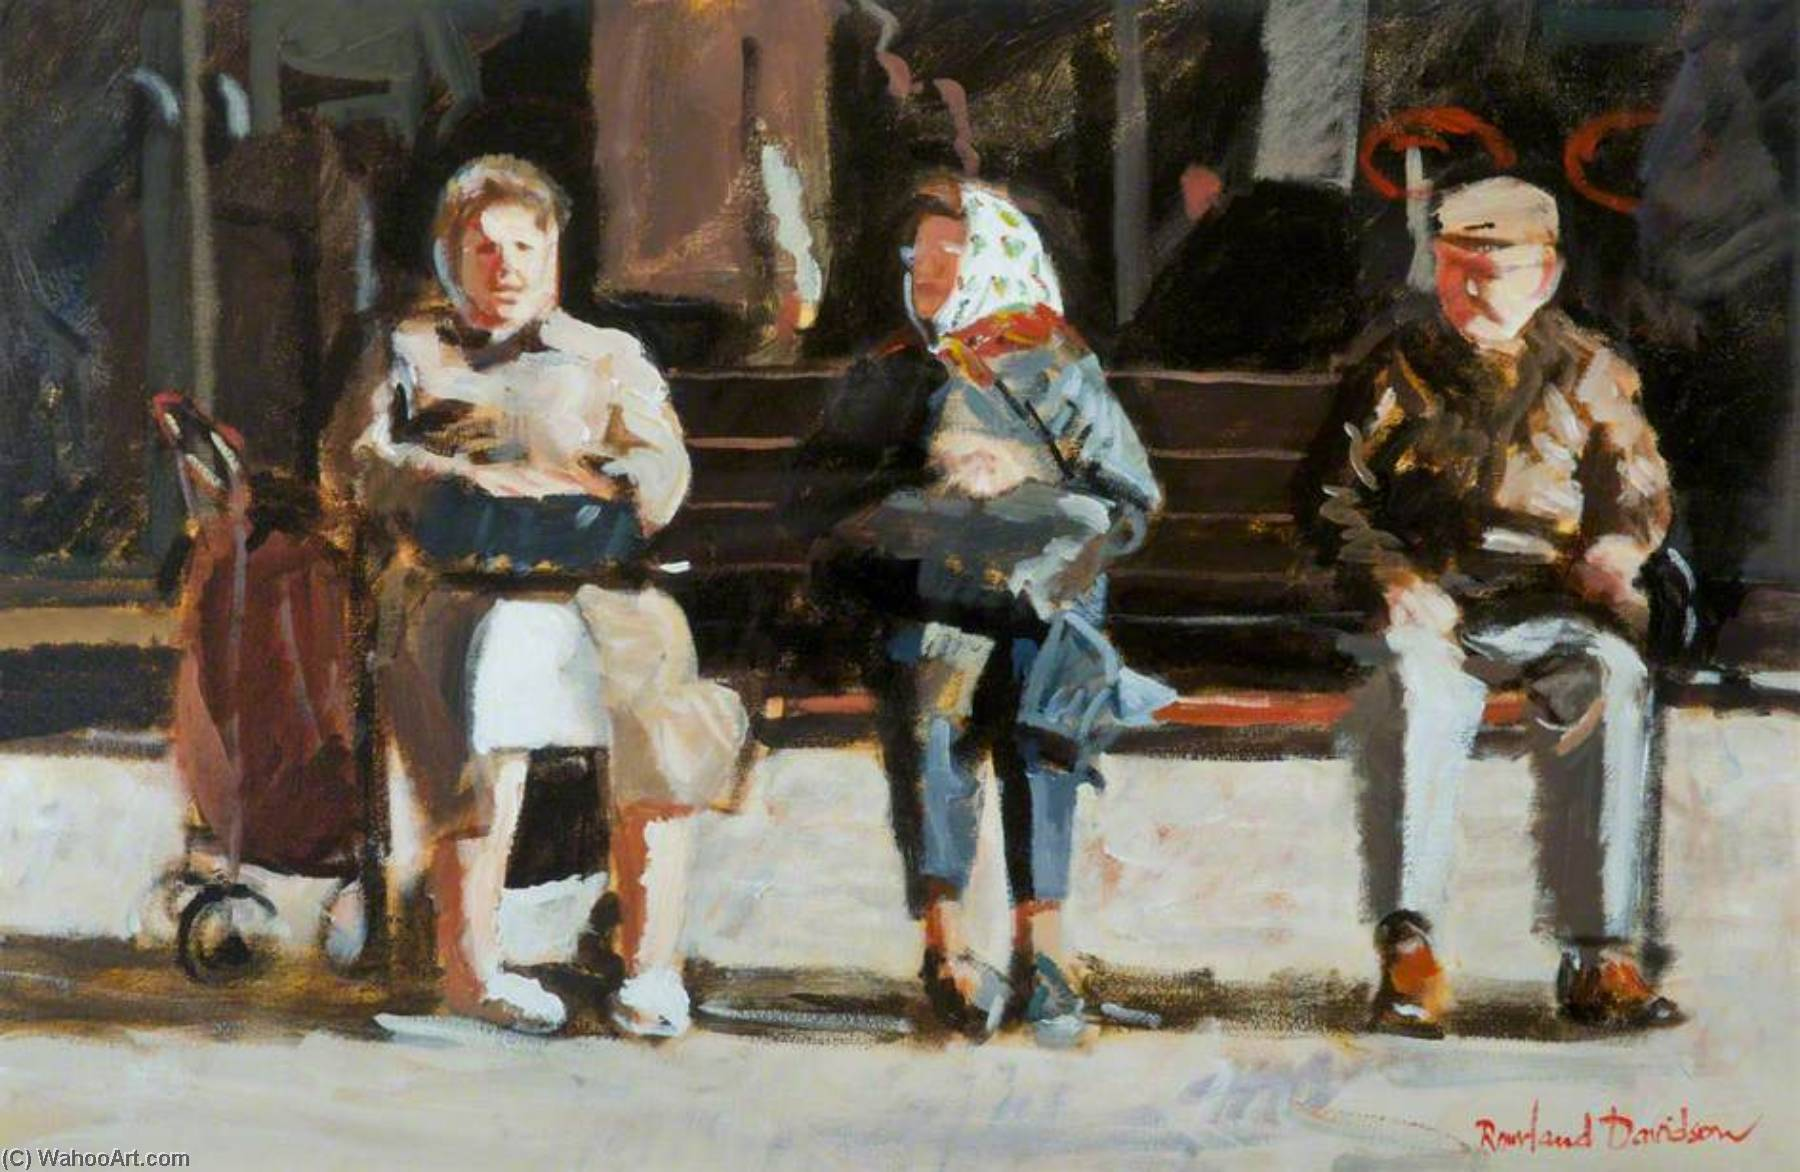 Senior Citizens, Donegall Place by Rowland Davidson | Oil Painting | WahooArt.com